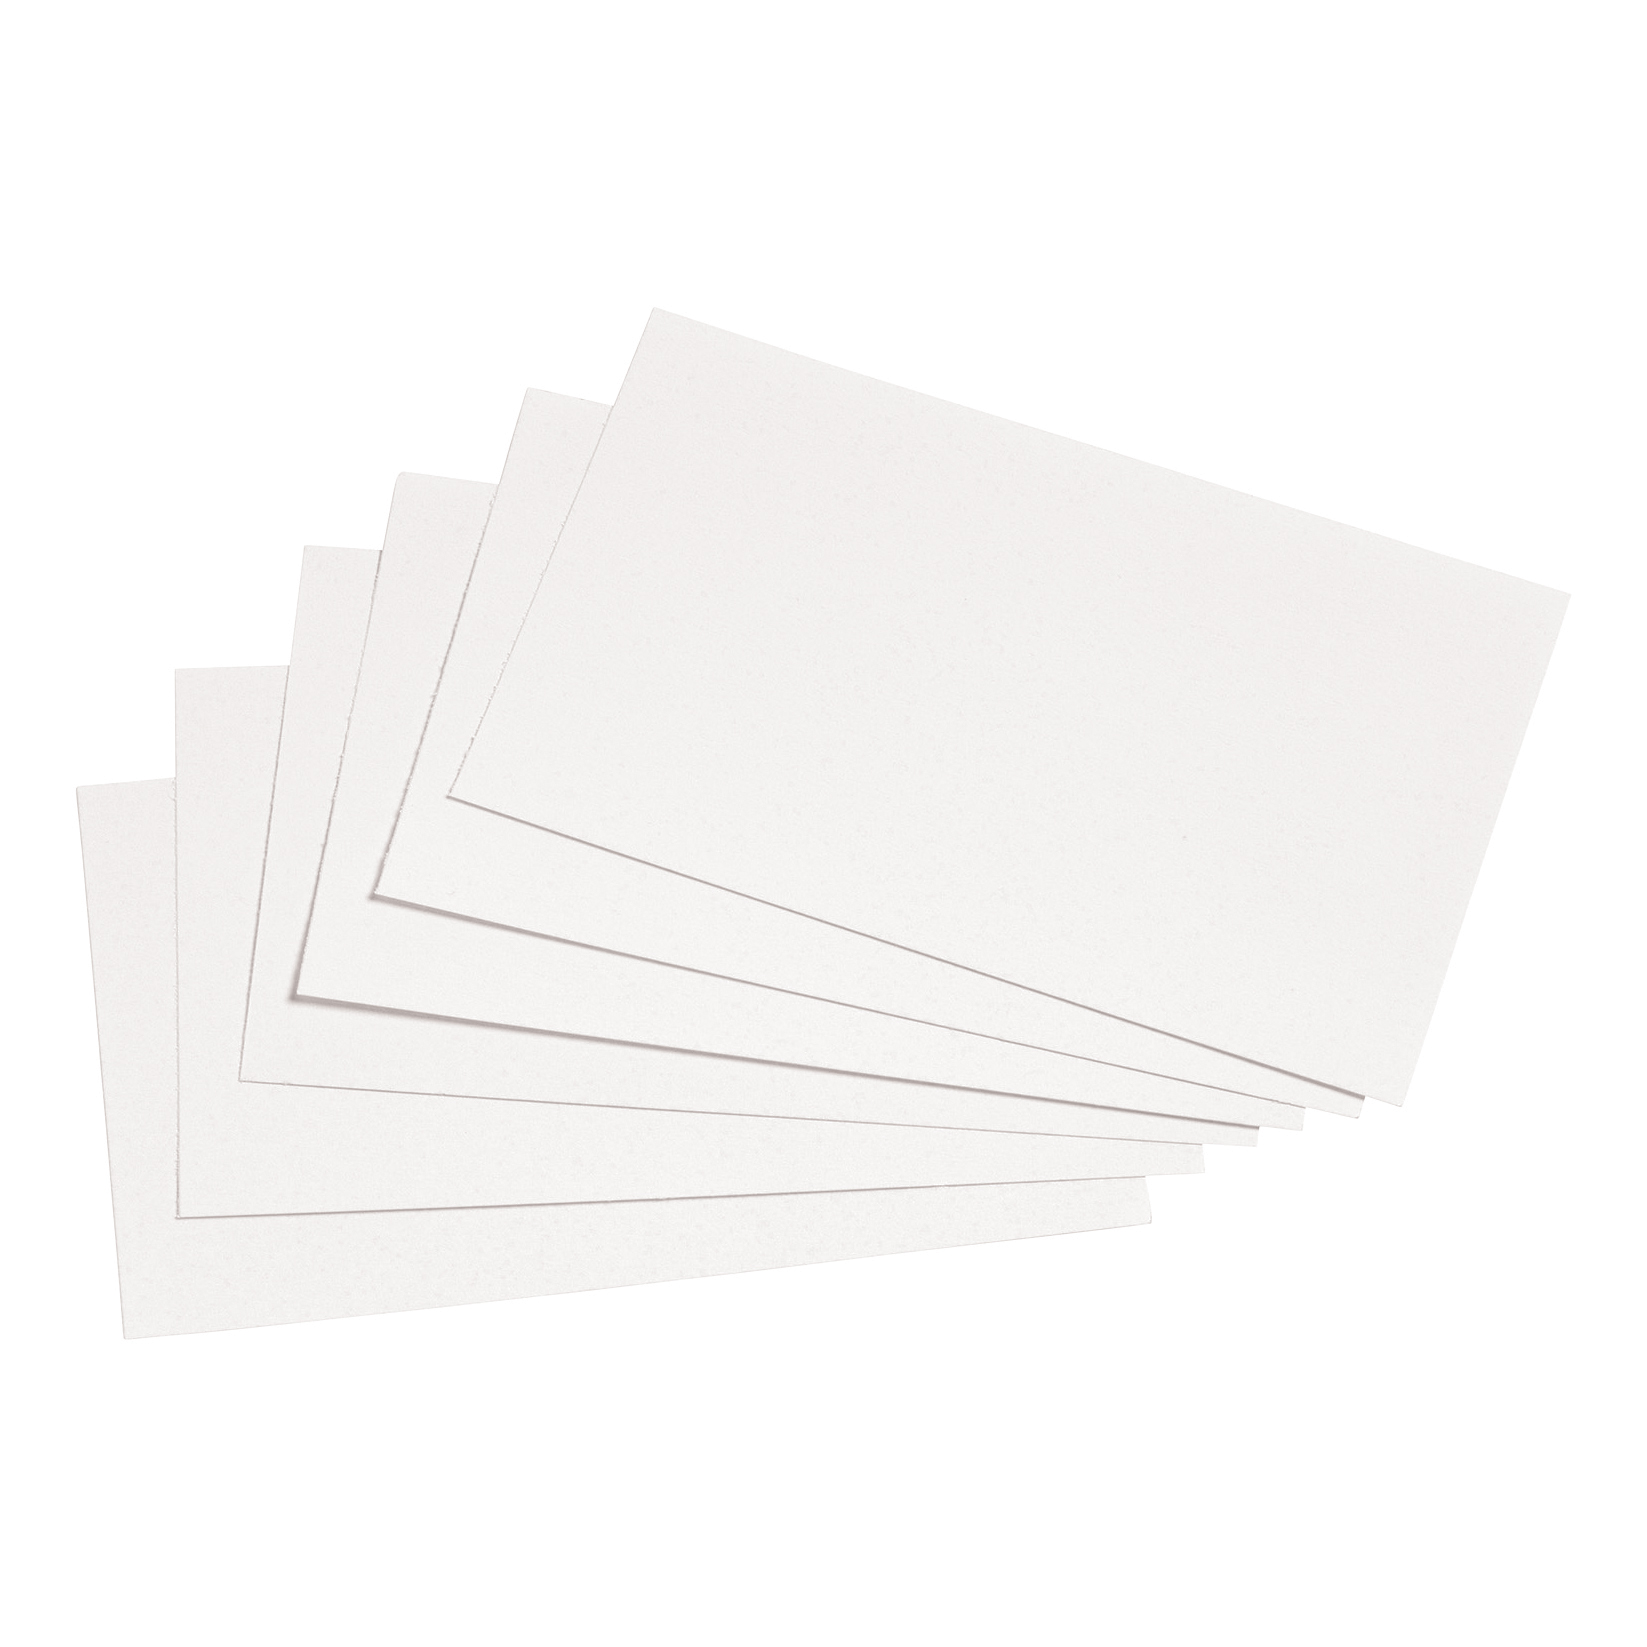 5 Star Office Record Cards Blank 5x3in 127x76mm White Pack 100